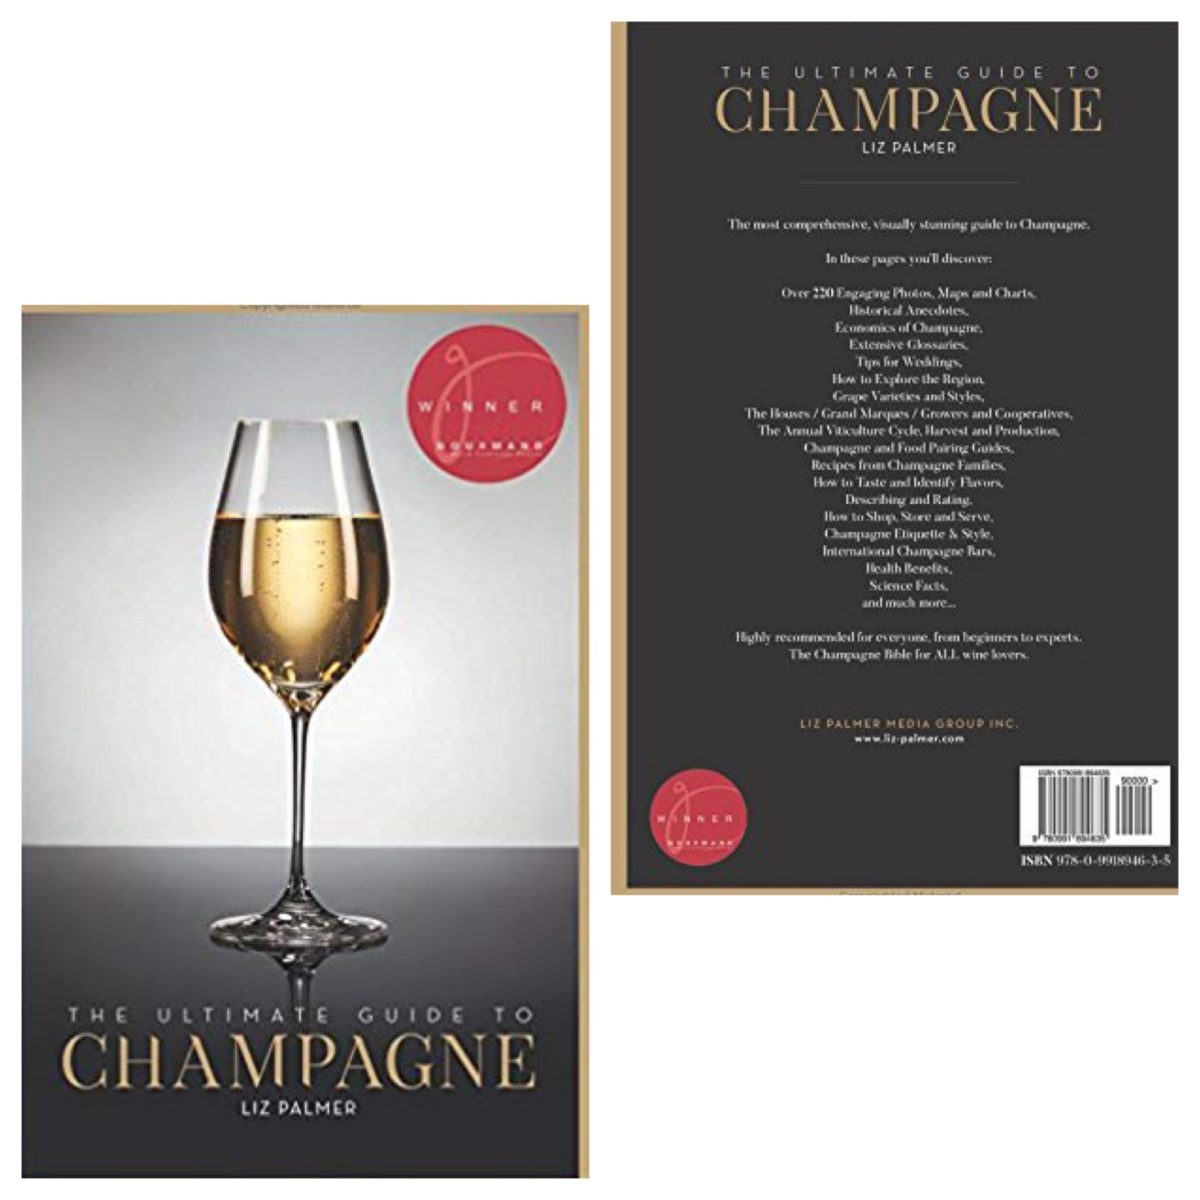 """The Ultimate Guide To Champagne"" is recommended as one of the ten best Champagne books"